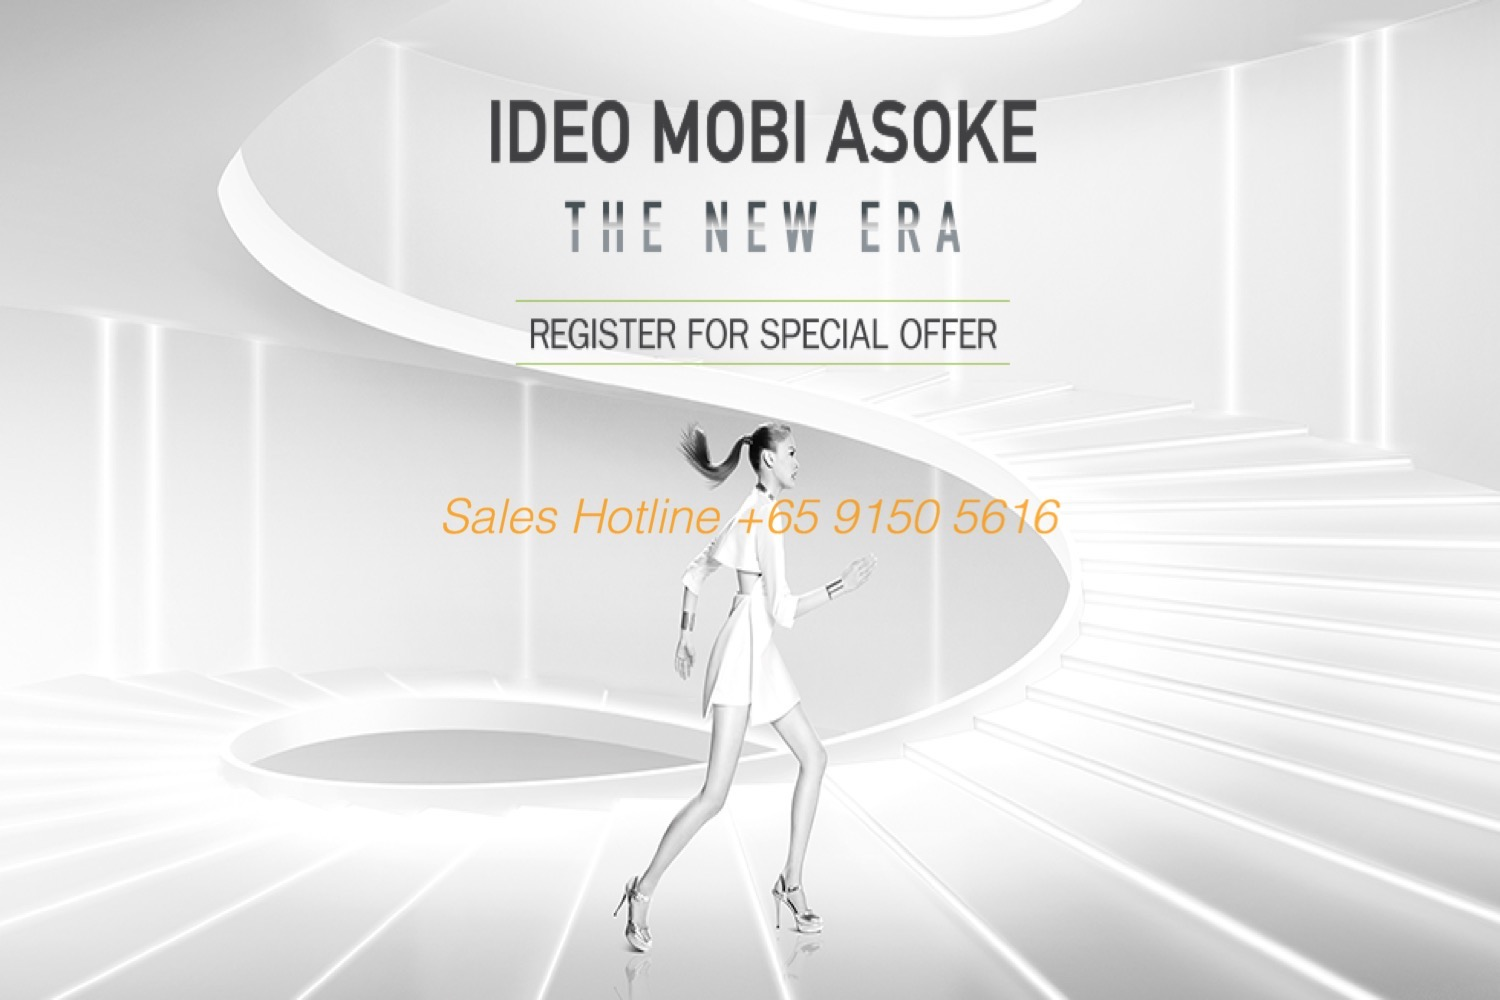 Ideo Mobi Asoke Register